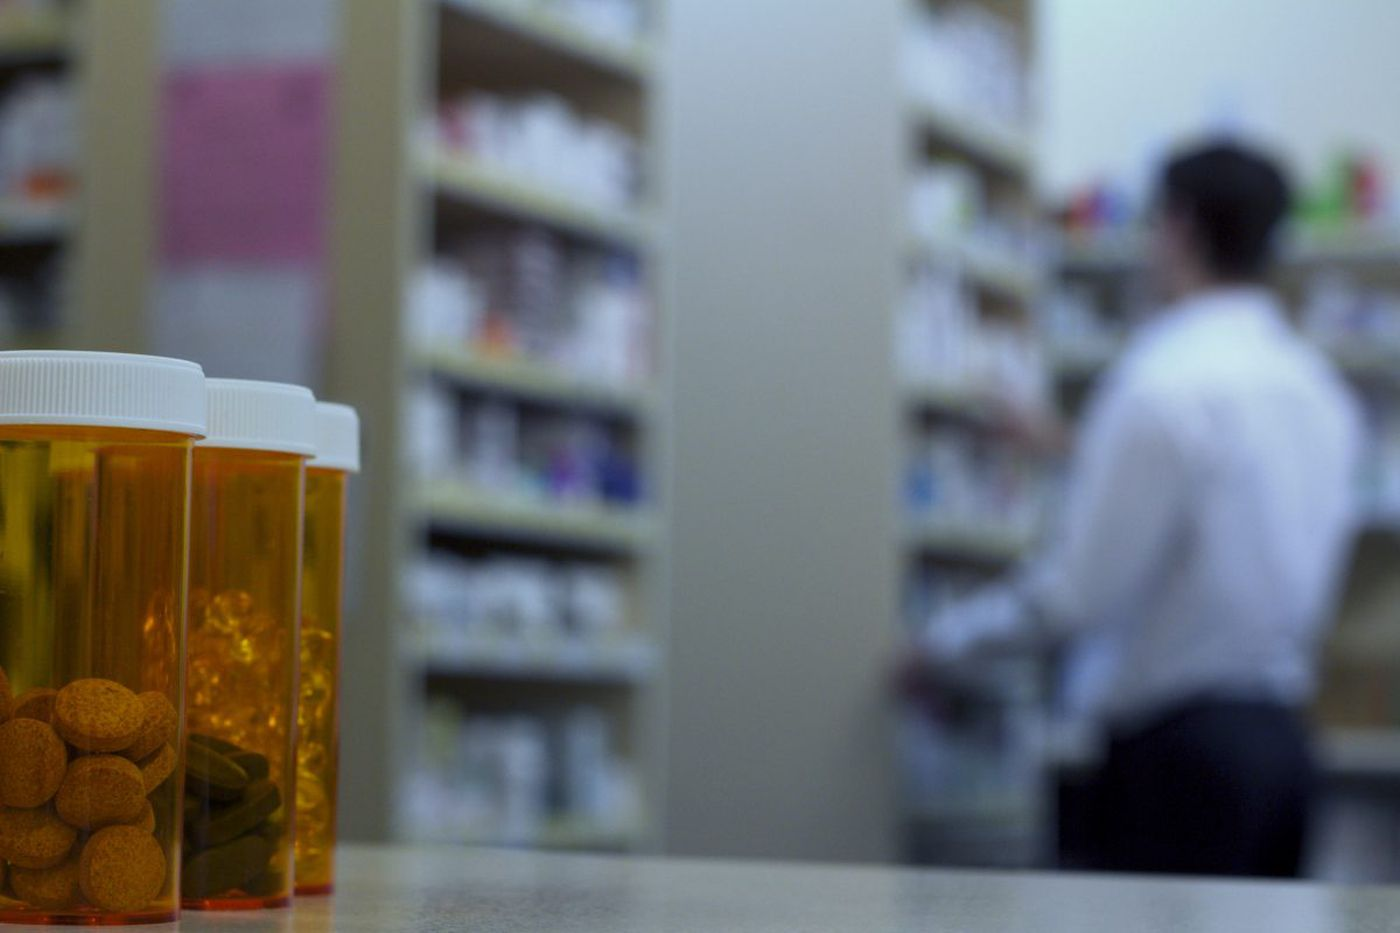 Buying drugs from Canada can cost 80 pct. less, and FDA wants to shut it down